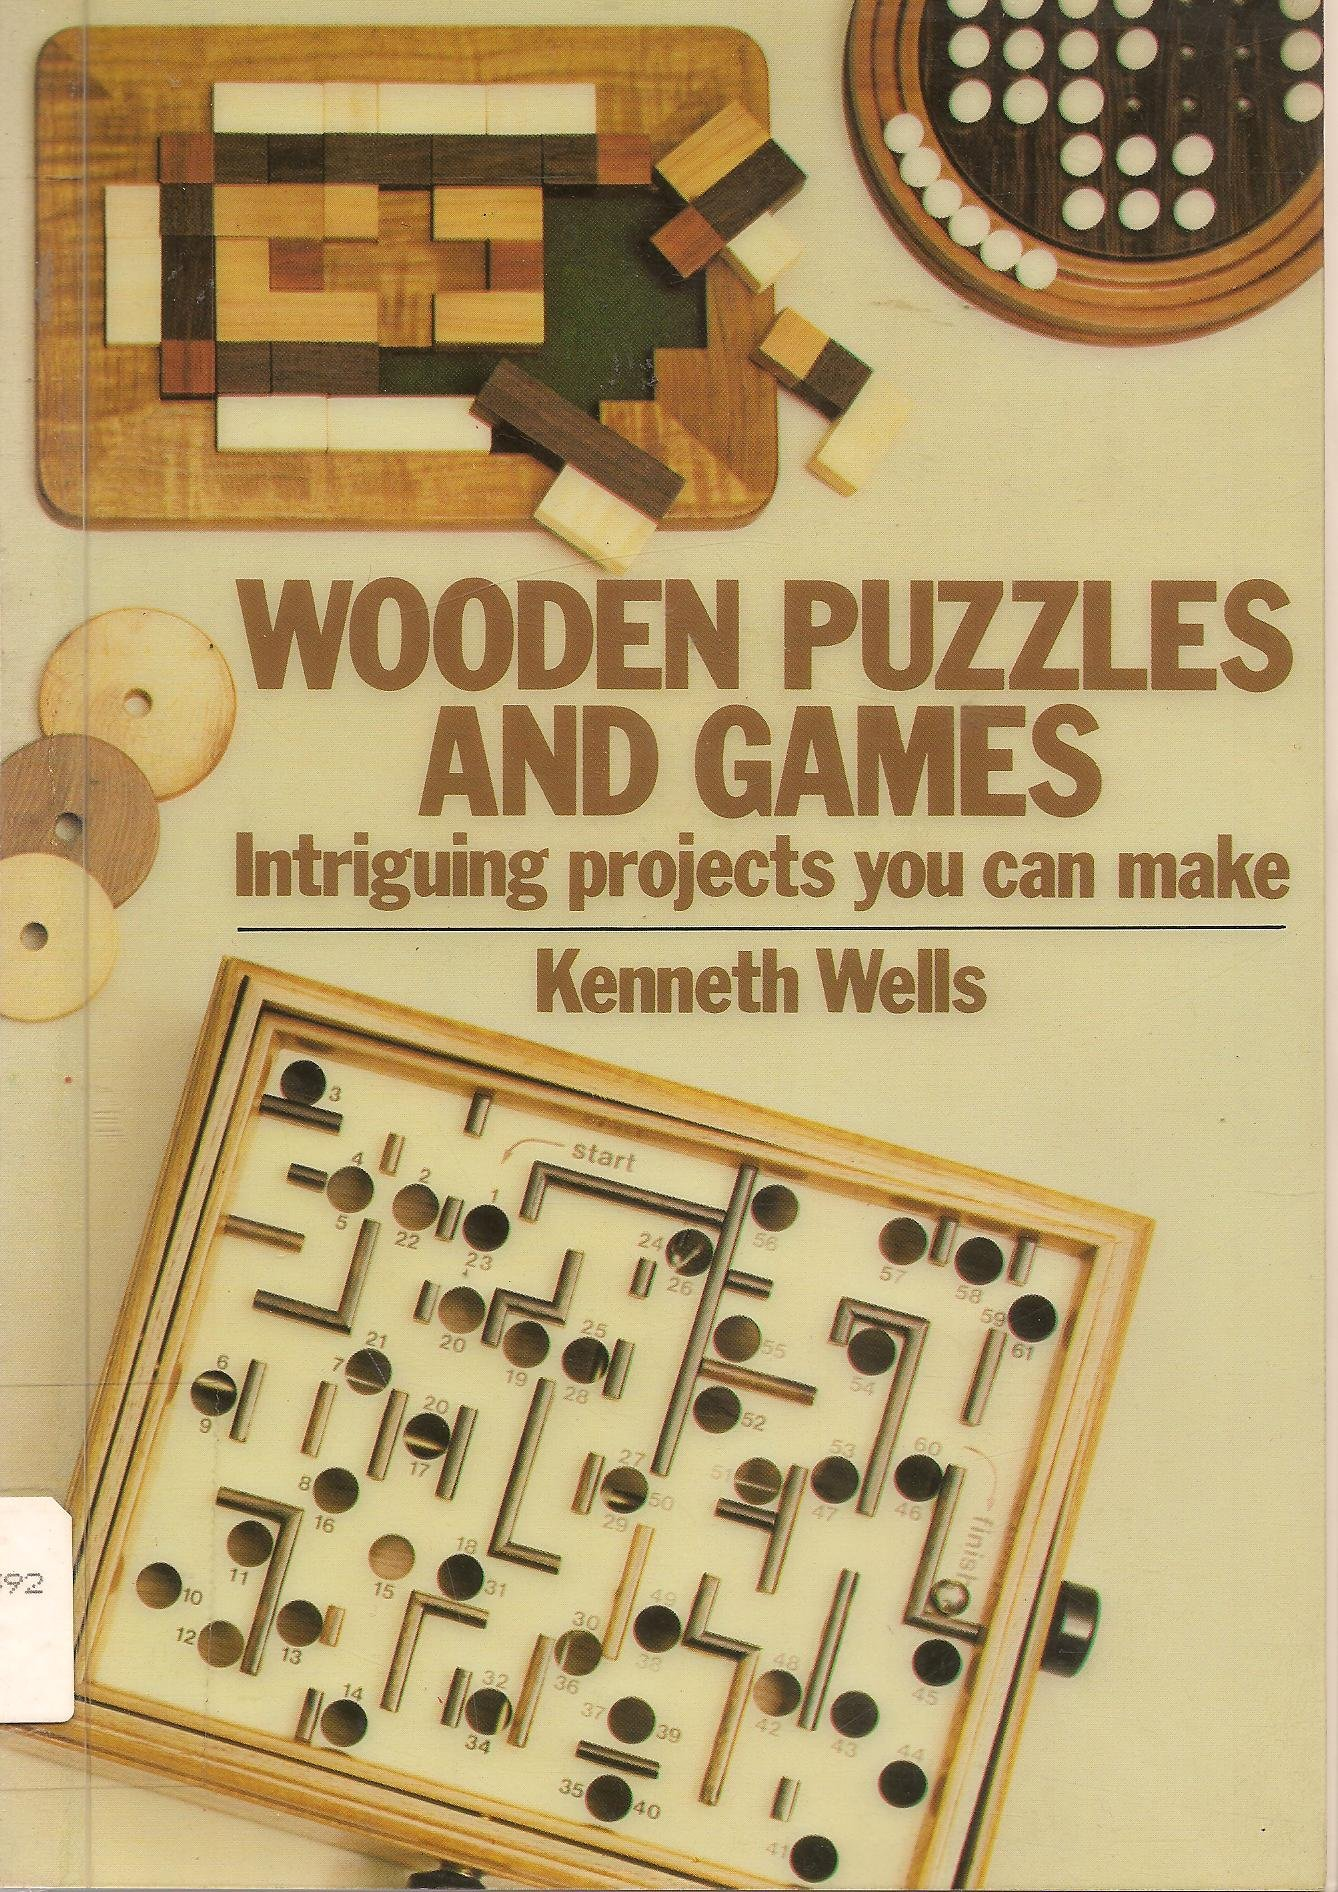 Wooden Puzzles Games Kenneth Wells product image